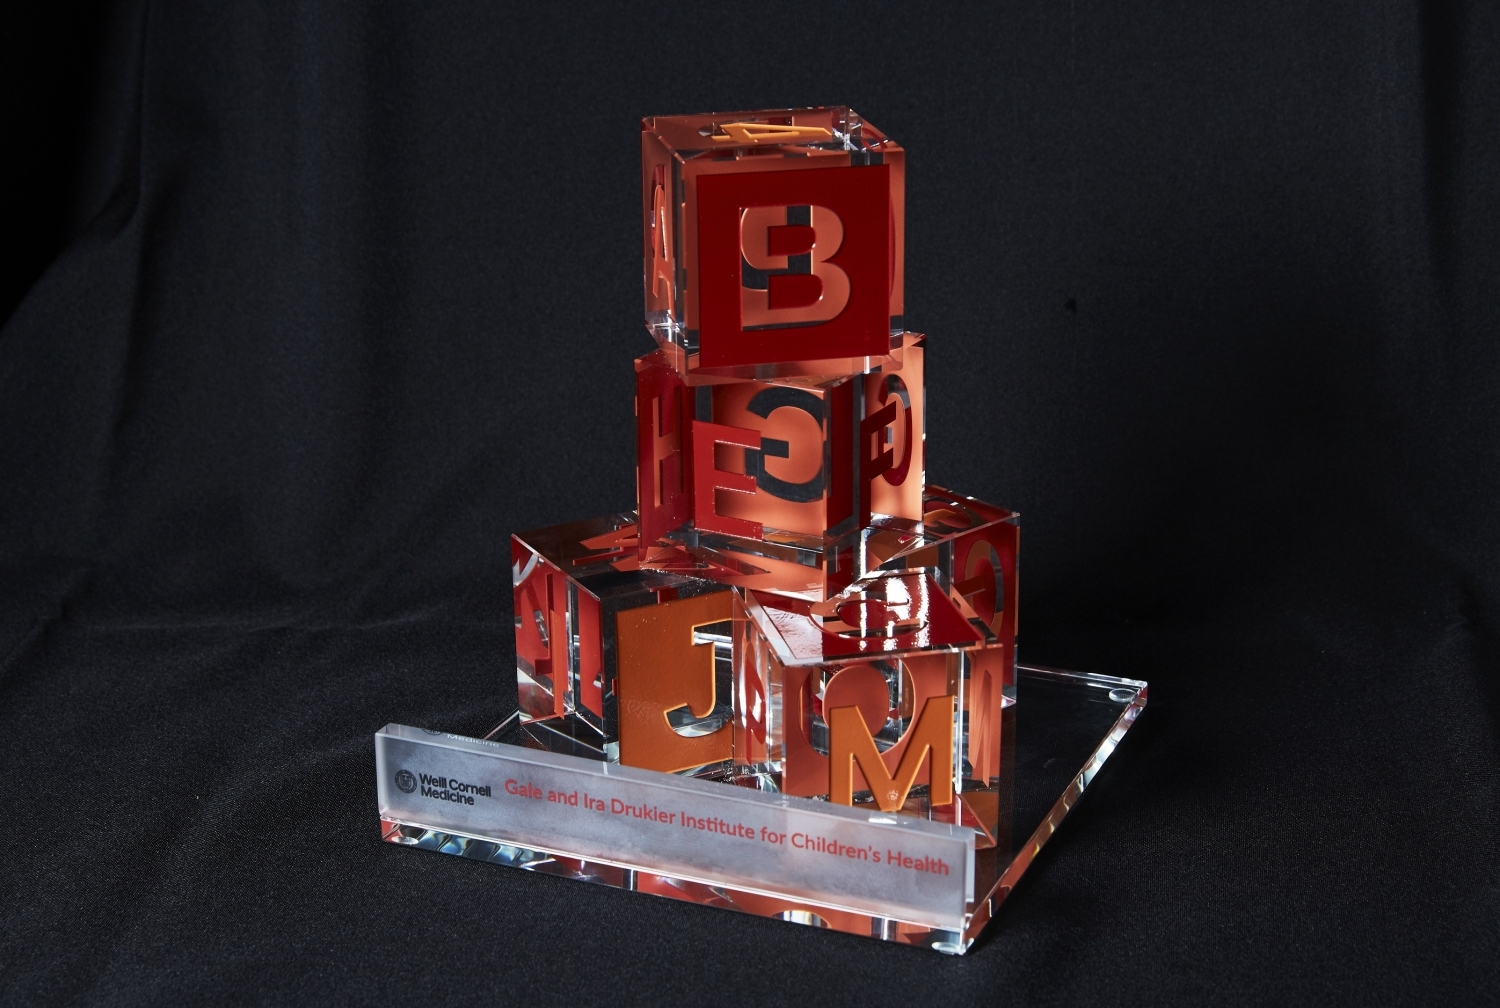 childrens blocks stacked on top of each other, representing Drukier Prize